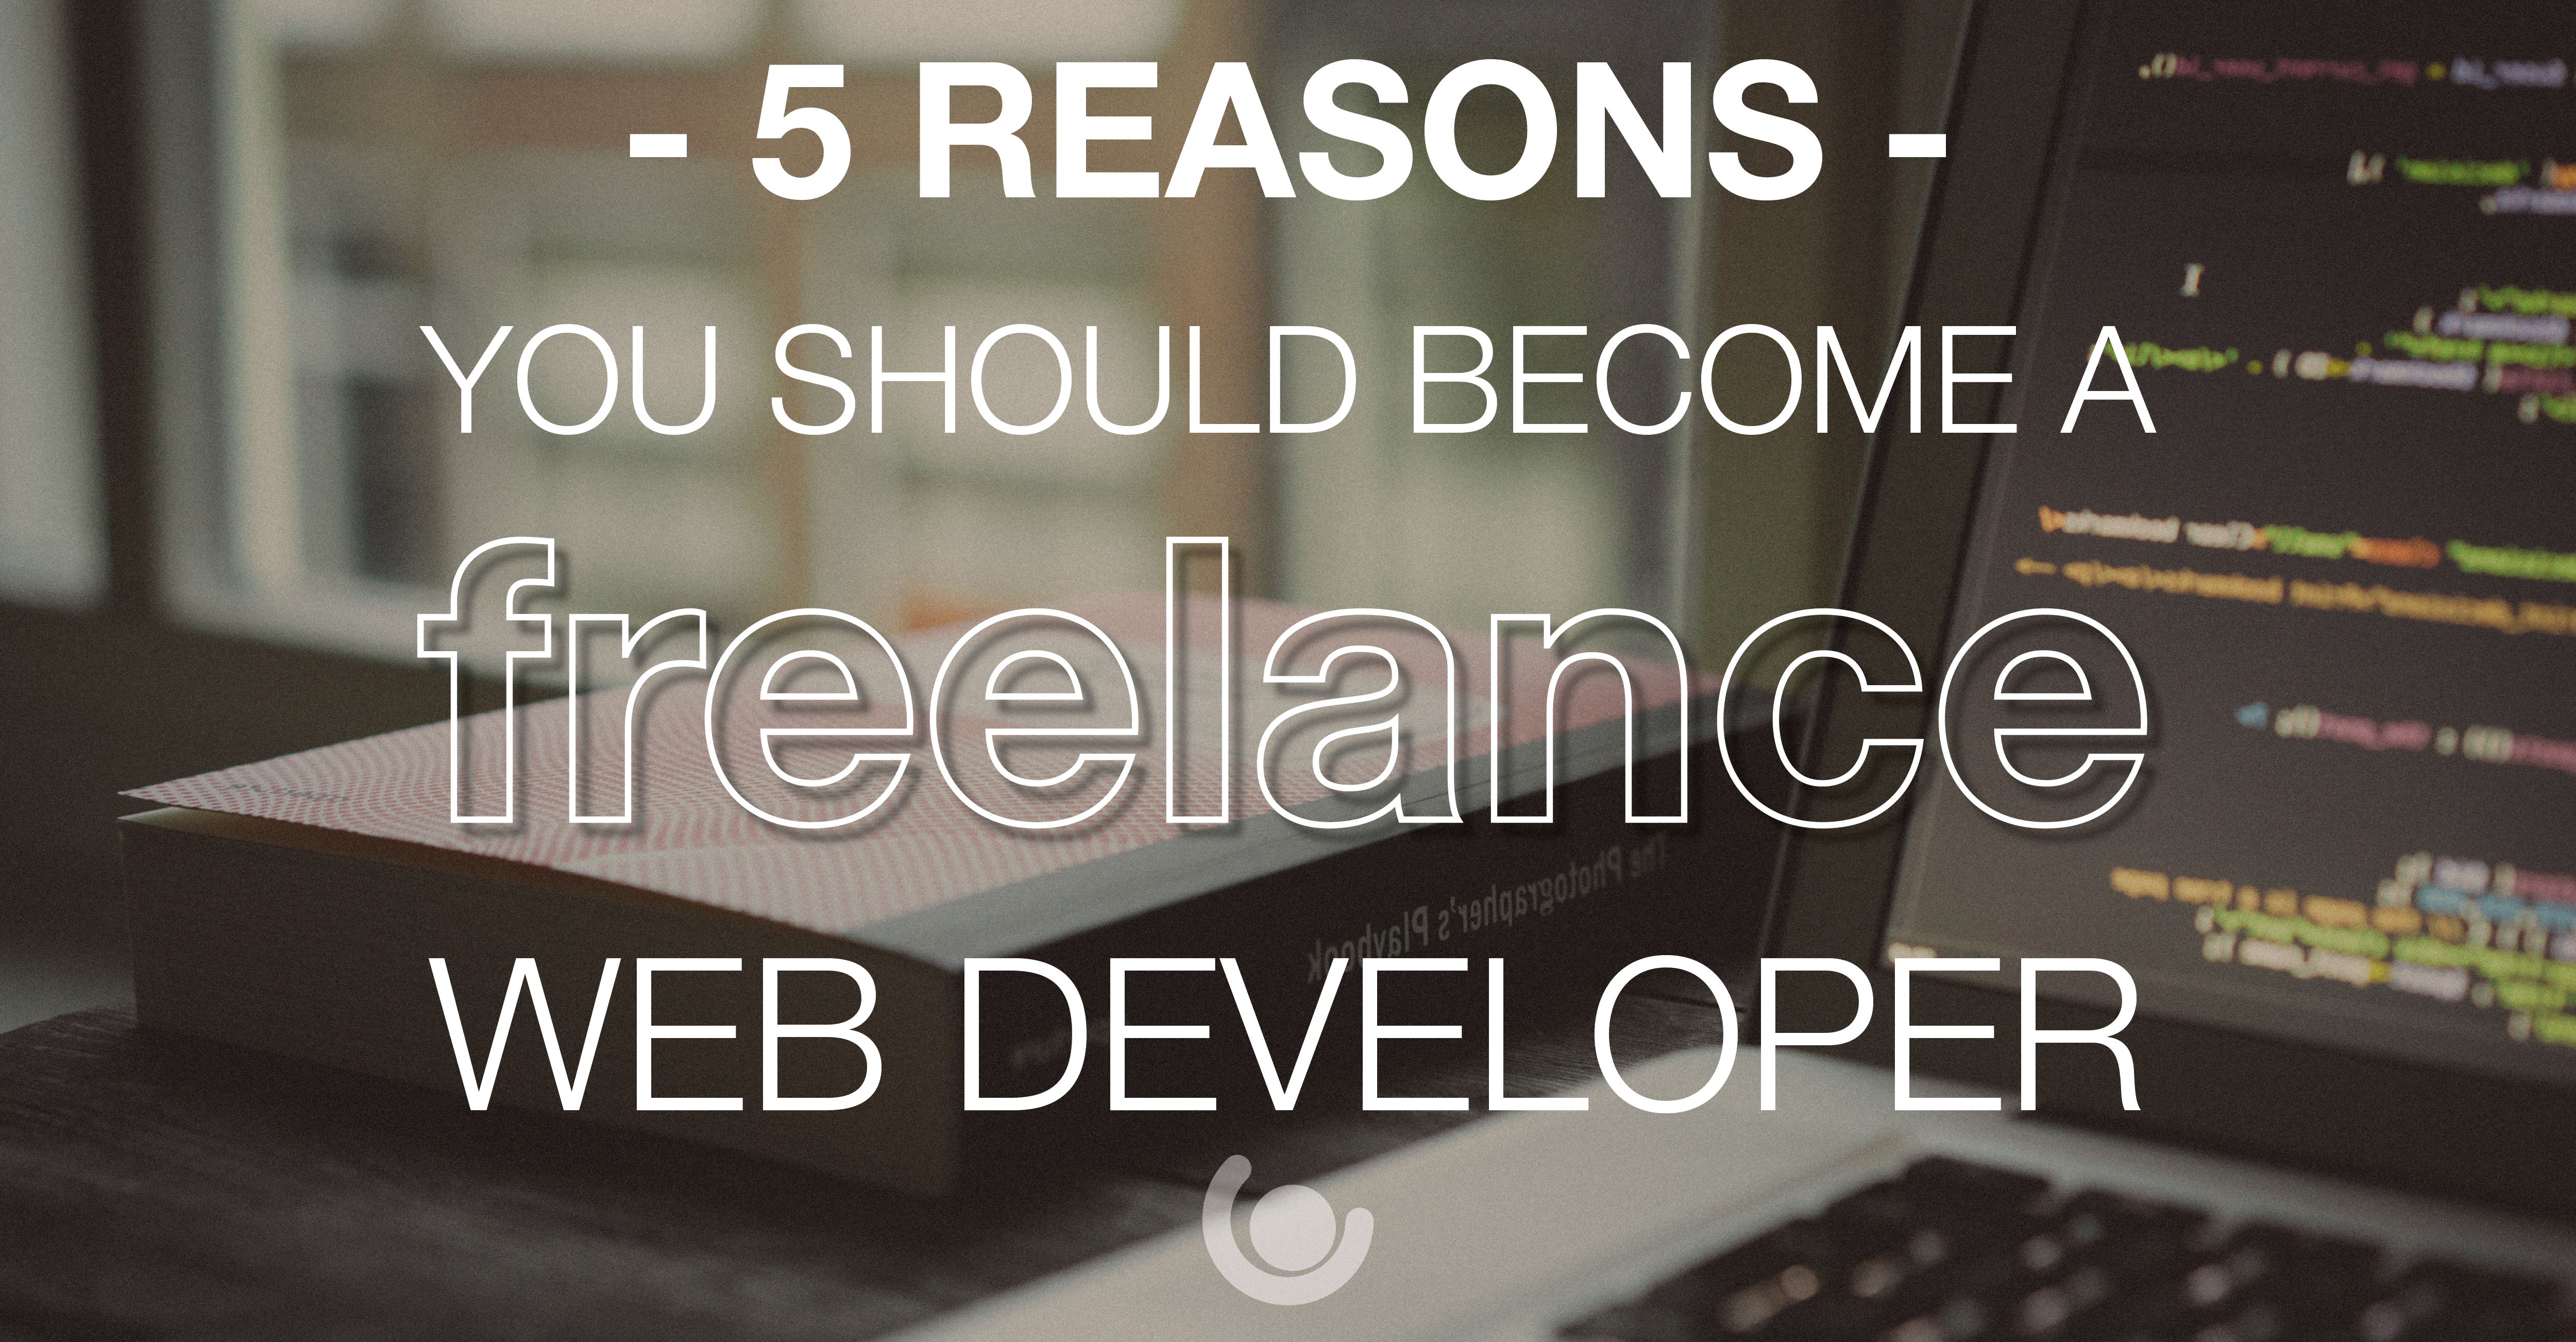 5-reasons-you-should-become-a-web-dev-01-1